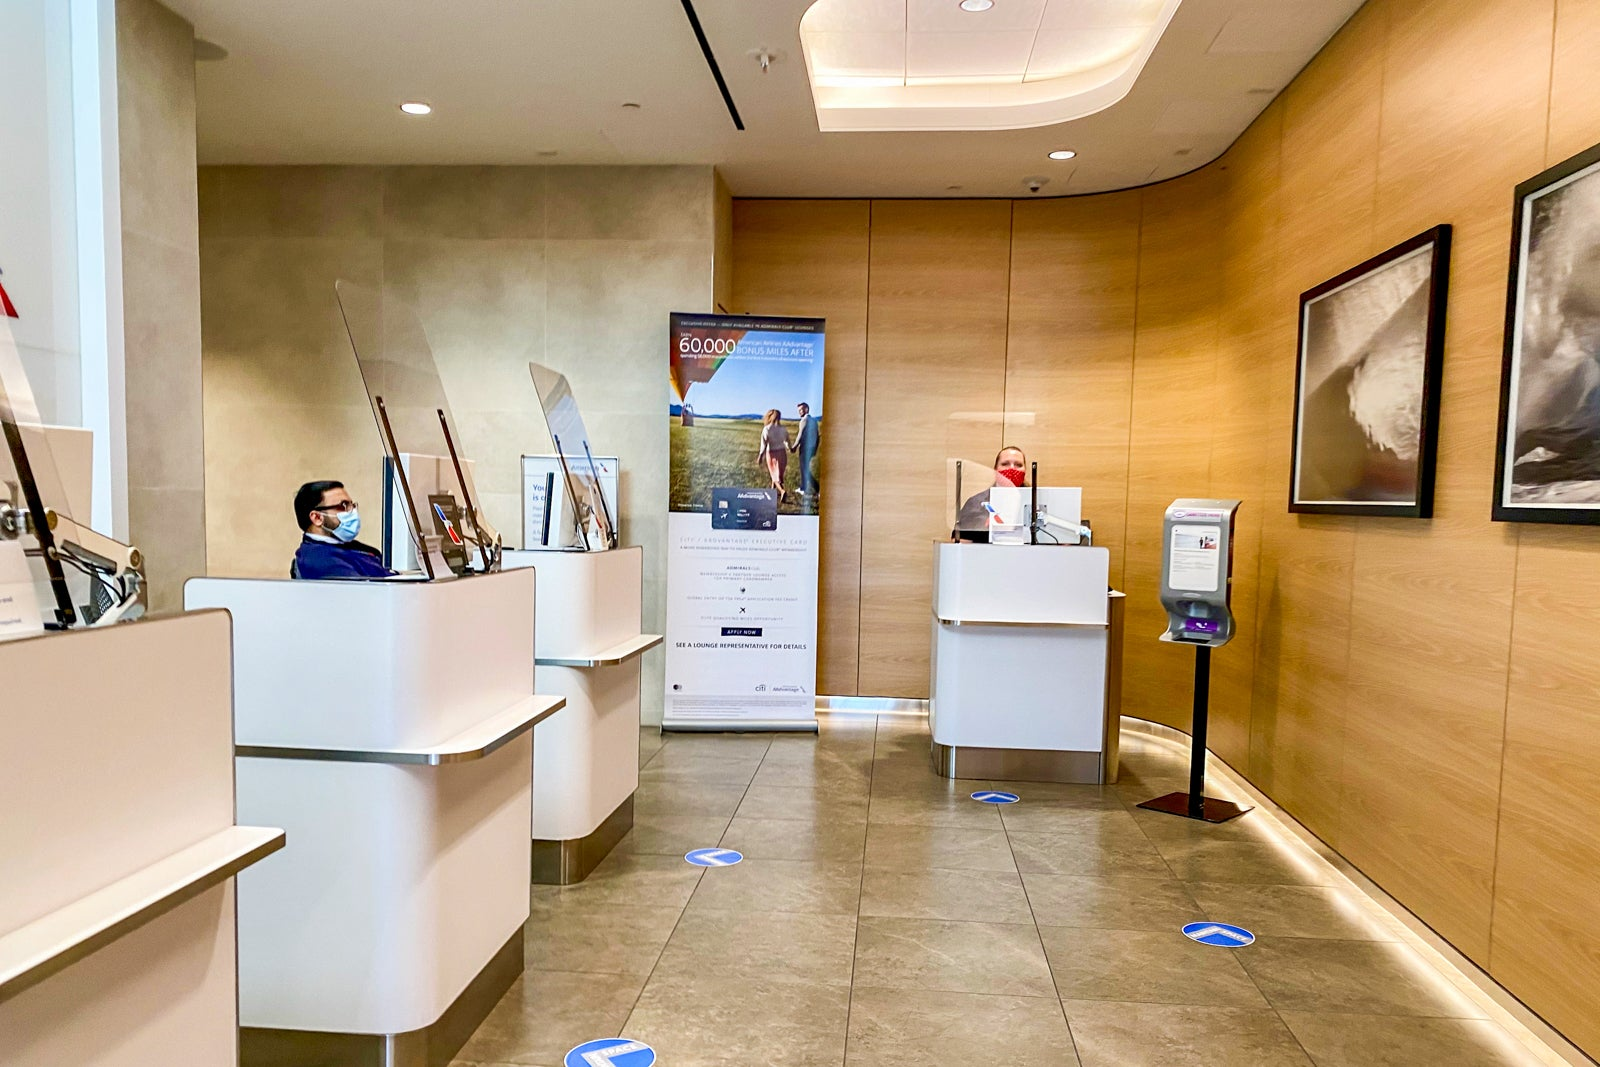 American Airlines Admirals Club entrance